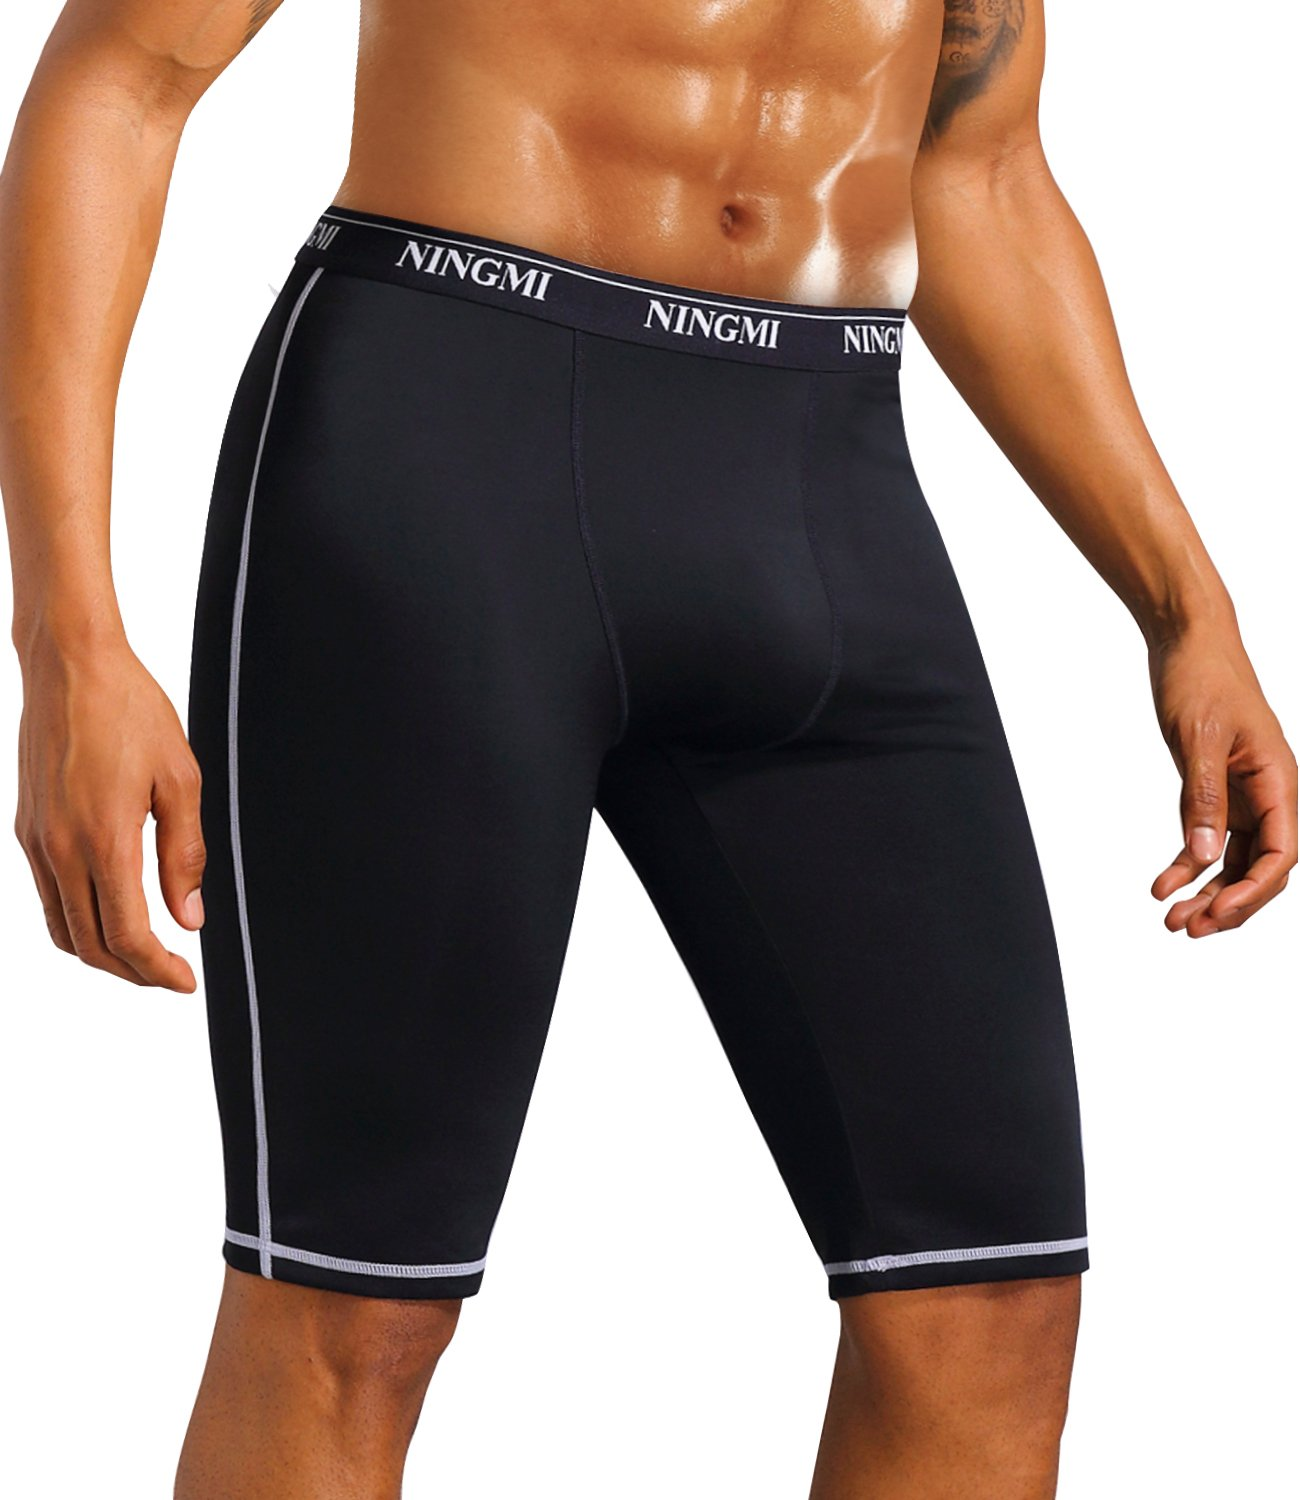 NINGMI Mens Running Compression Workout Shorts Gym Active Pants Quick Dry Sports Tights Jammers Swimsuits SFNMBMR09001